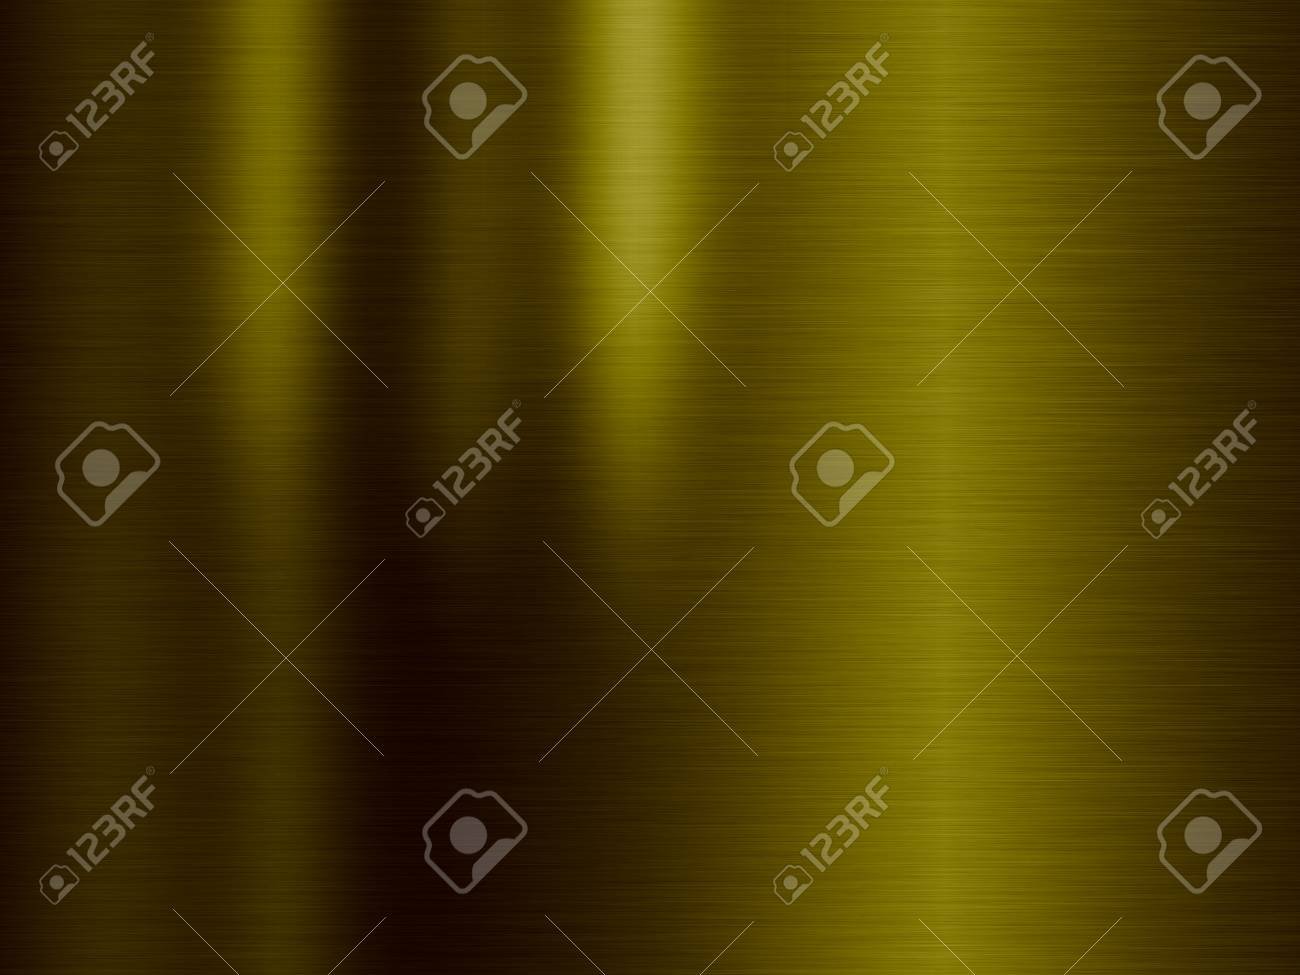 Stainless steel texture or metal texture background Banque d'images - 75076753